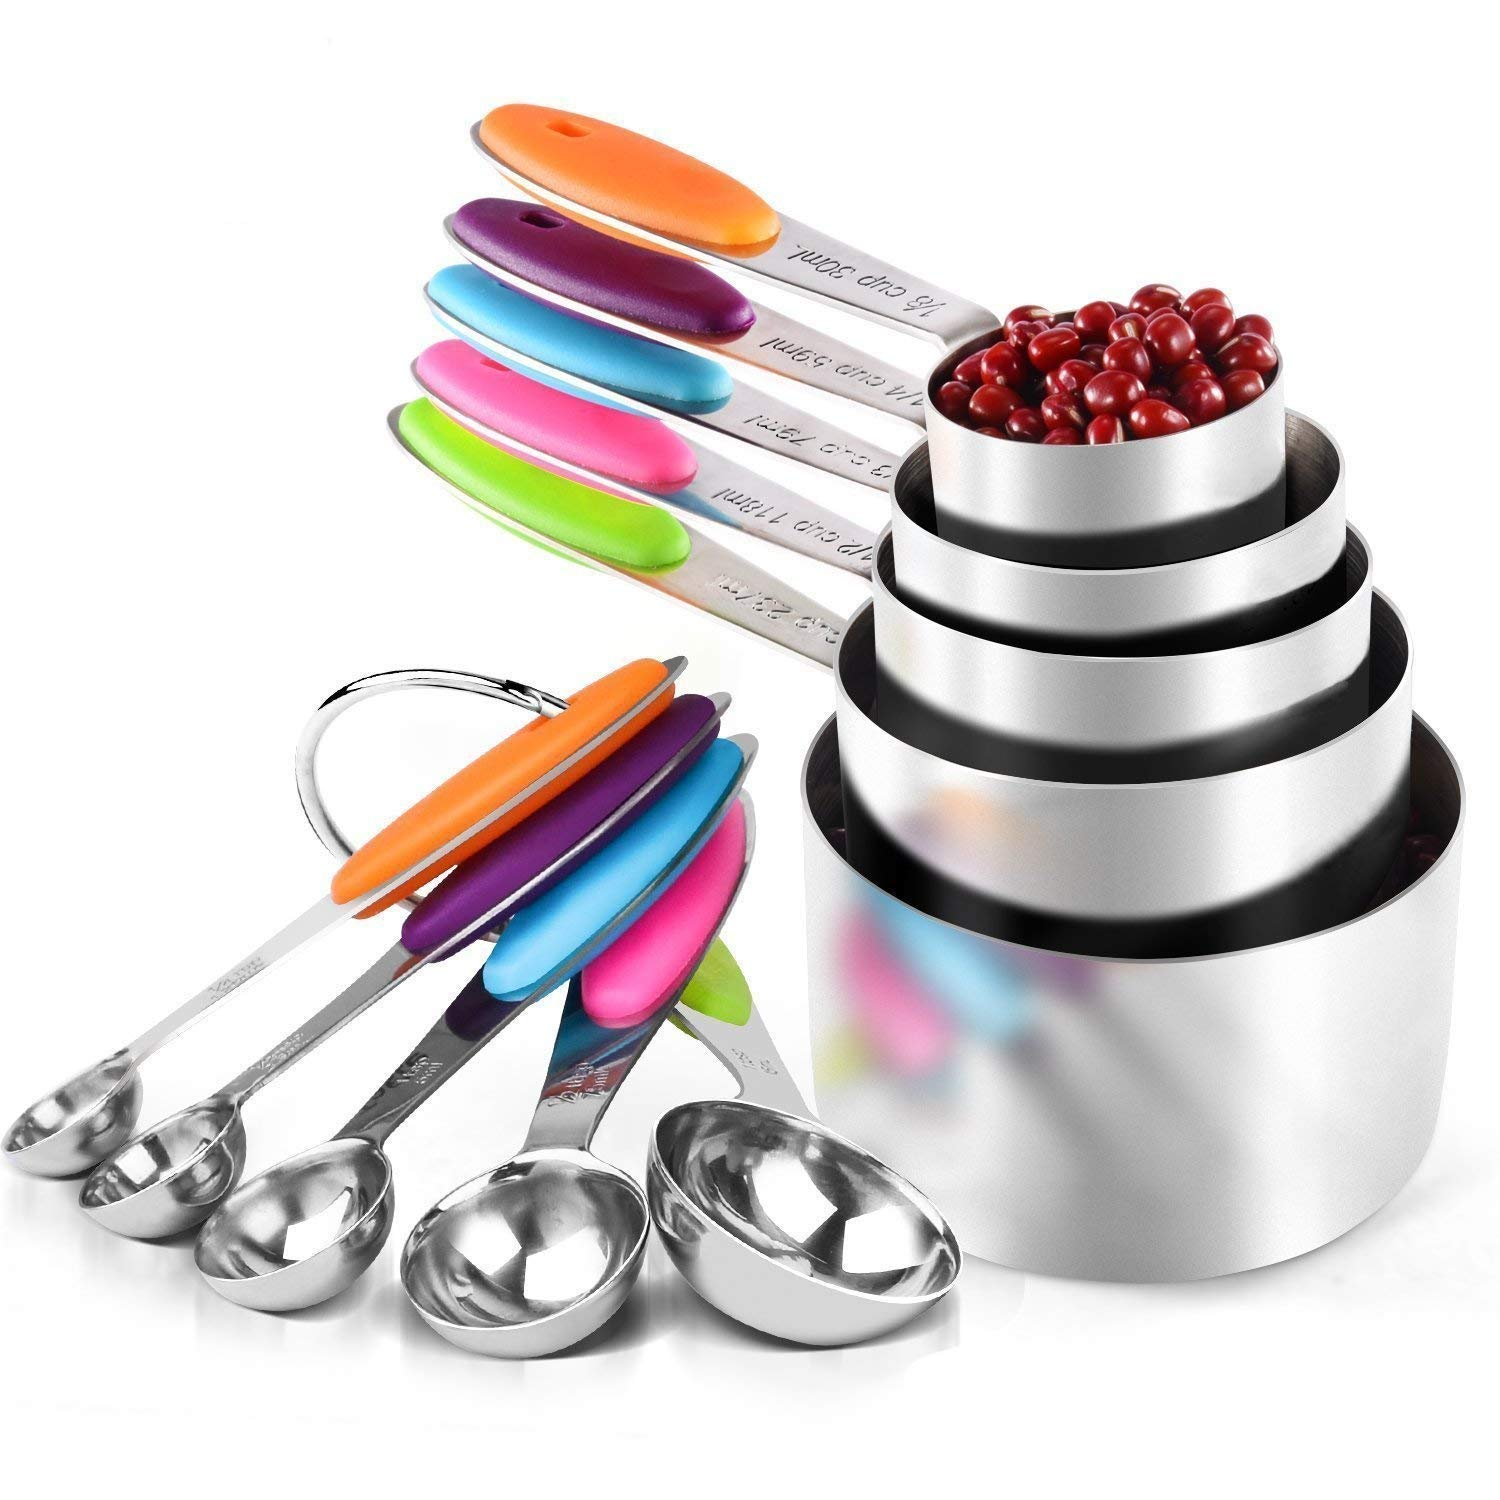 Bemarten Measuring Cups and Spoons Set, Multicolored Silicone Handles for Measuring Dry and Liquid Ingredients Perfect for Baking, Durable 304 Stainless Steel 5 Measuring Cups and 5 Measuring Spoons with 2 O Rings